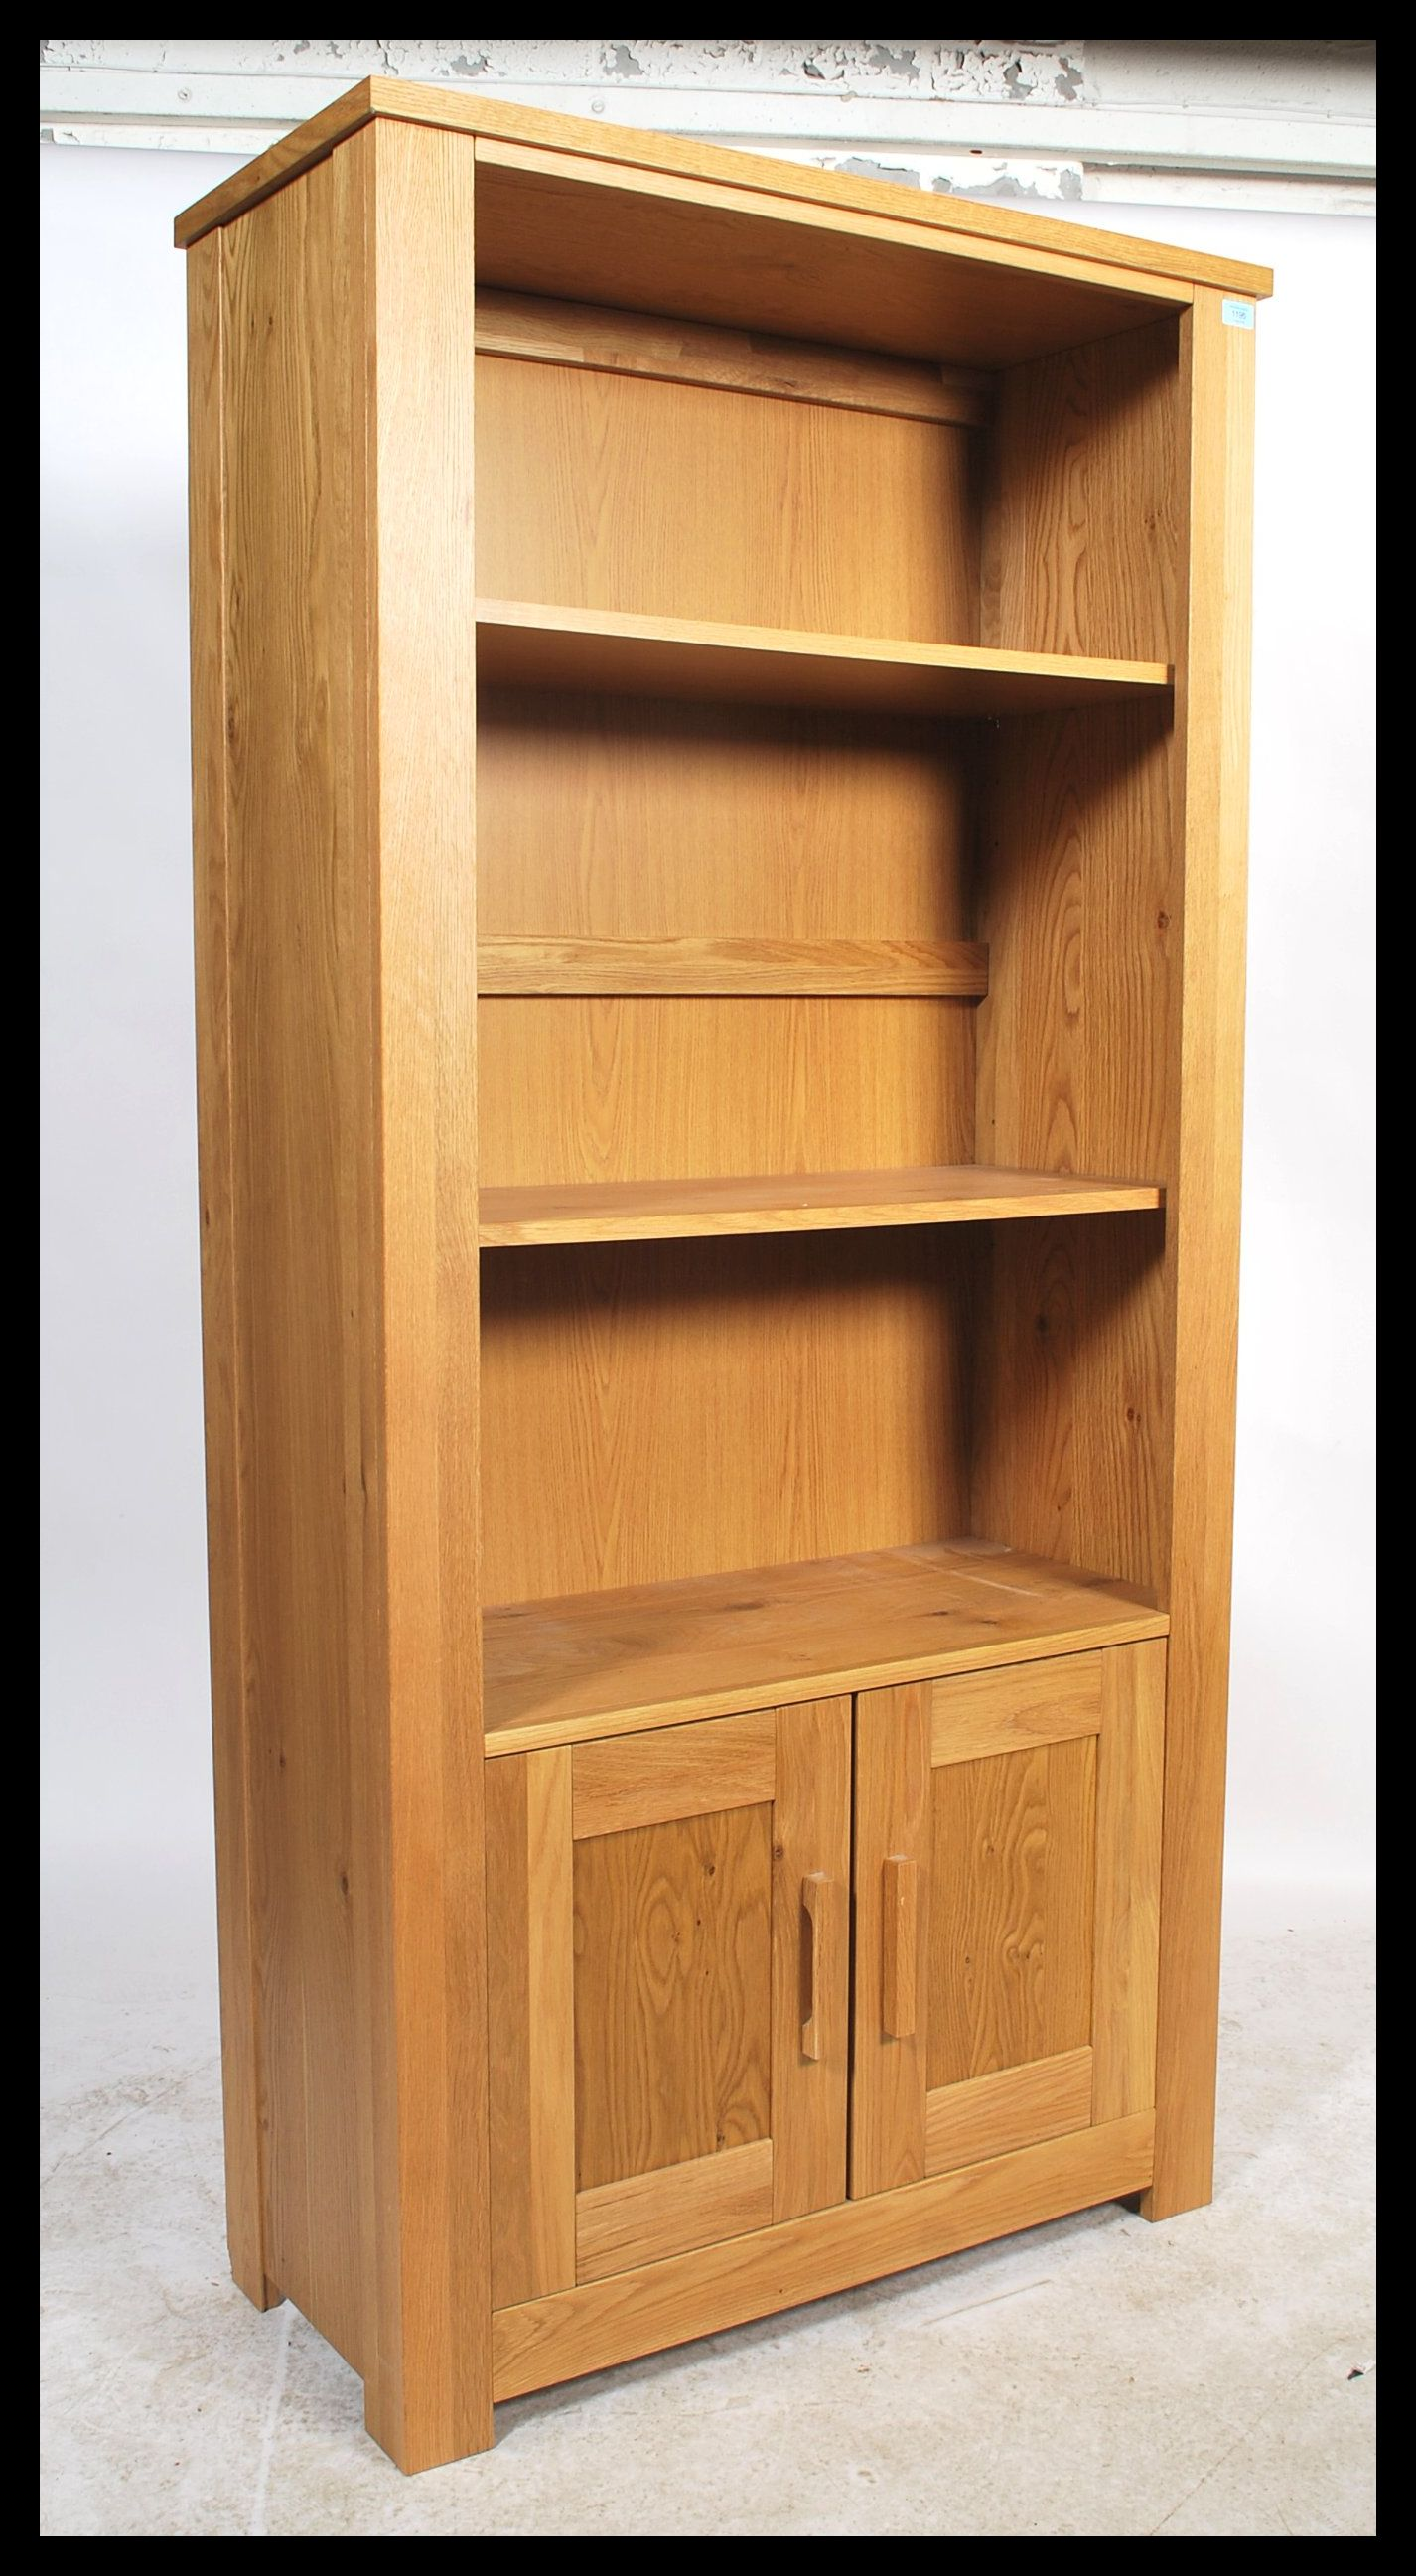 A Contemporary Chunky Oak Upright Bookcase Cabinet With